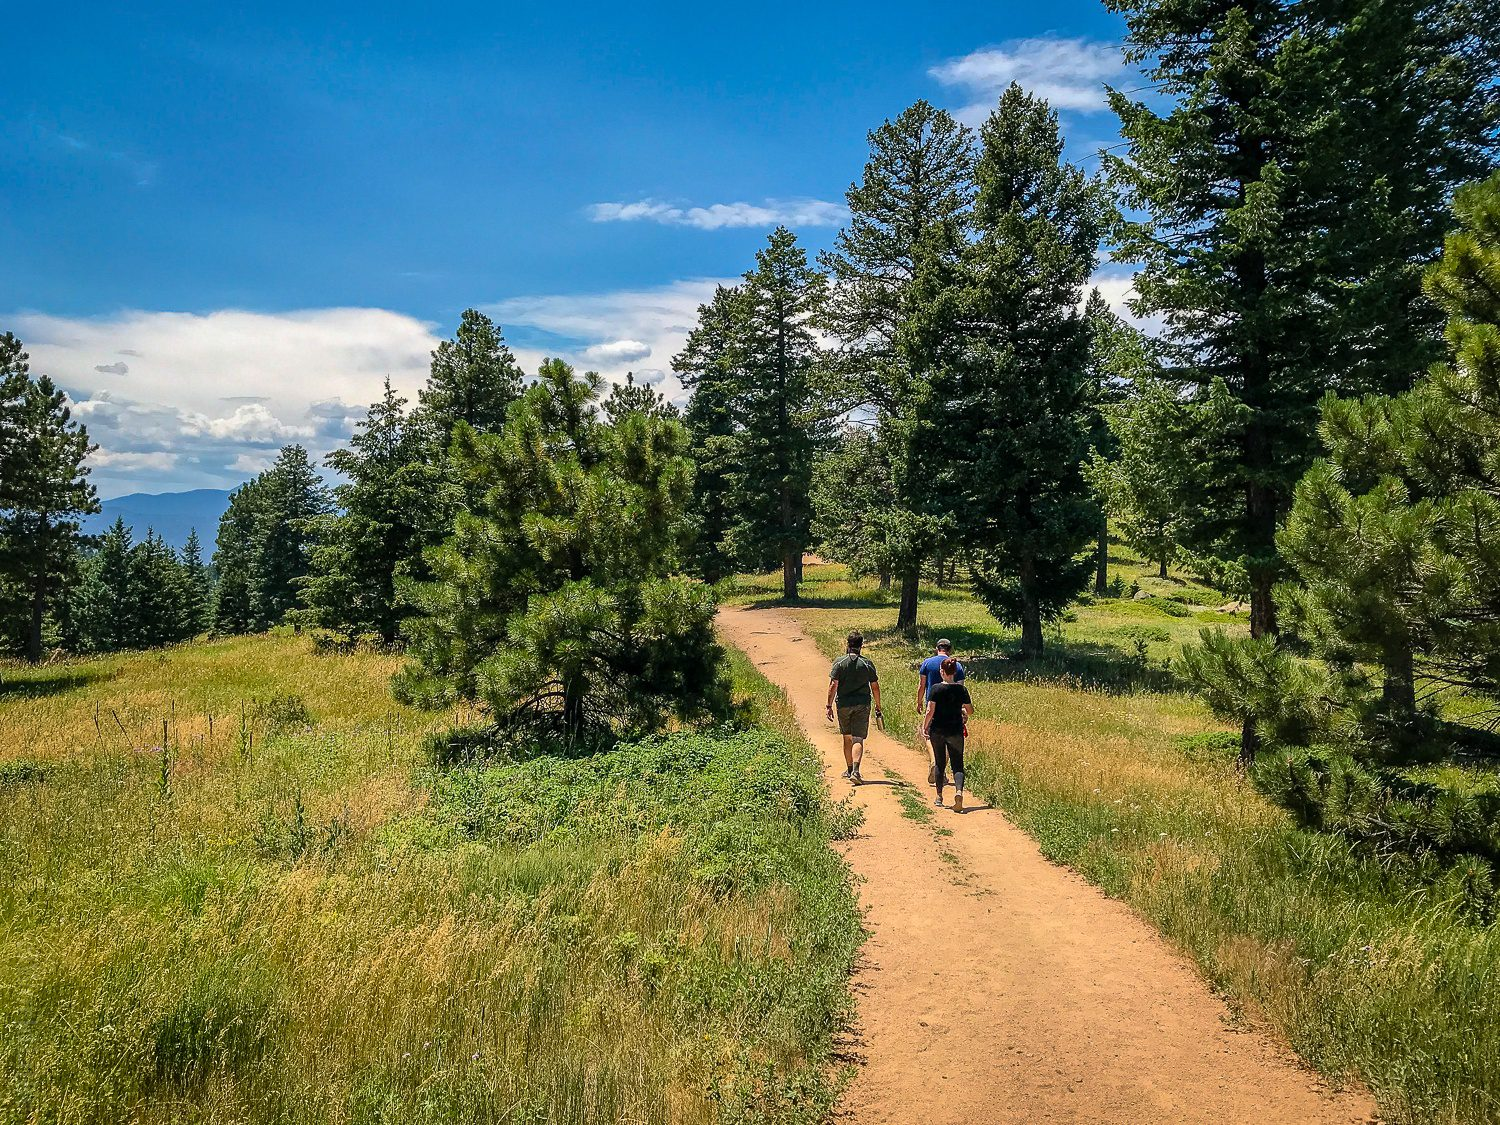 Boulder hikes for views and moderate exertion